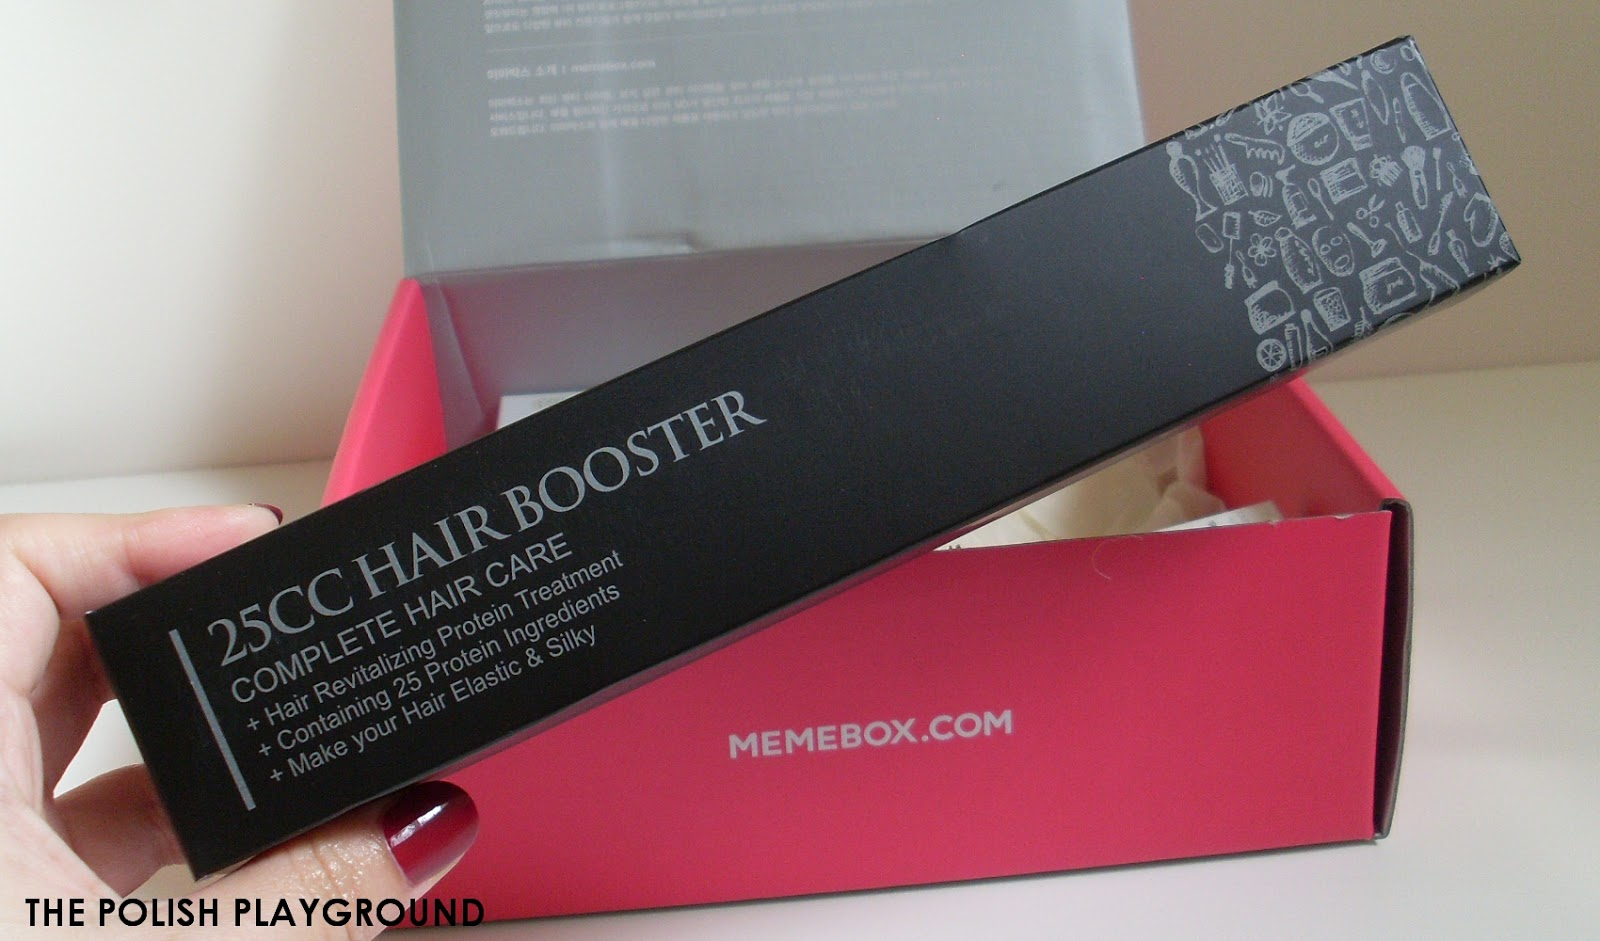 Memebox #9 Unboxing - 25cc Hairbooster